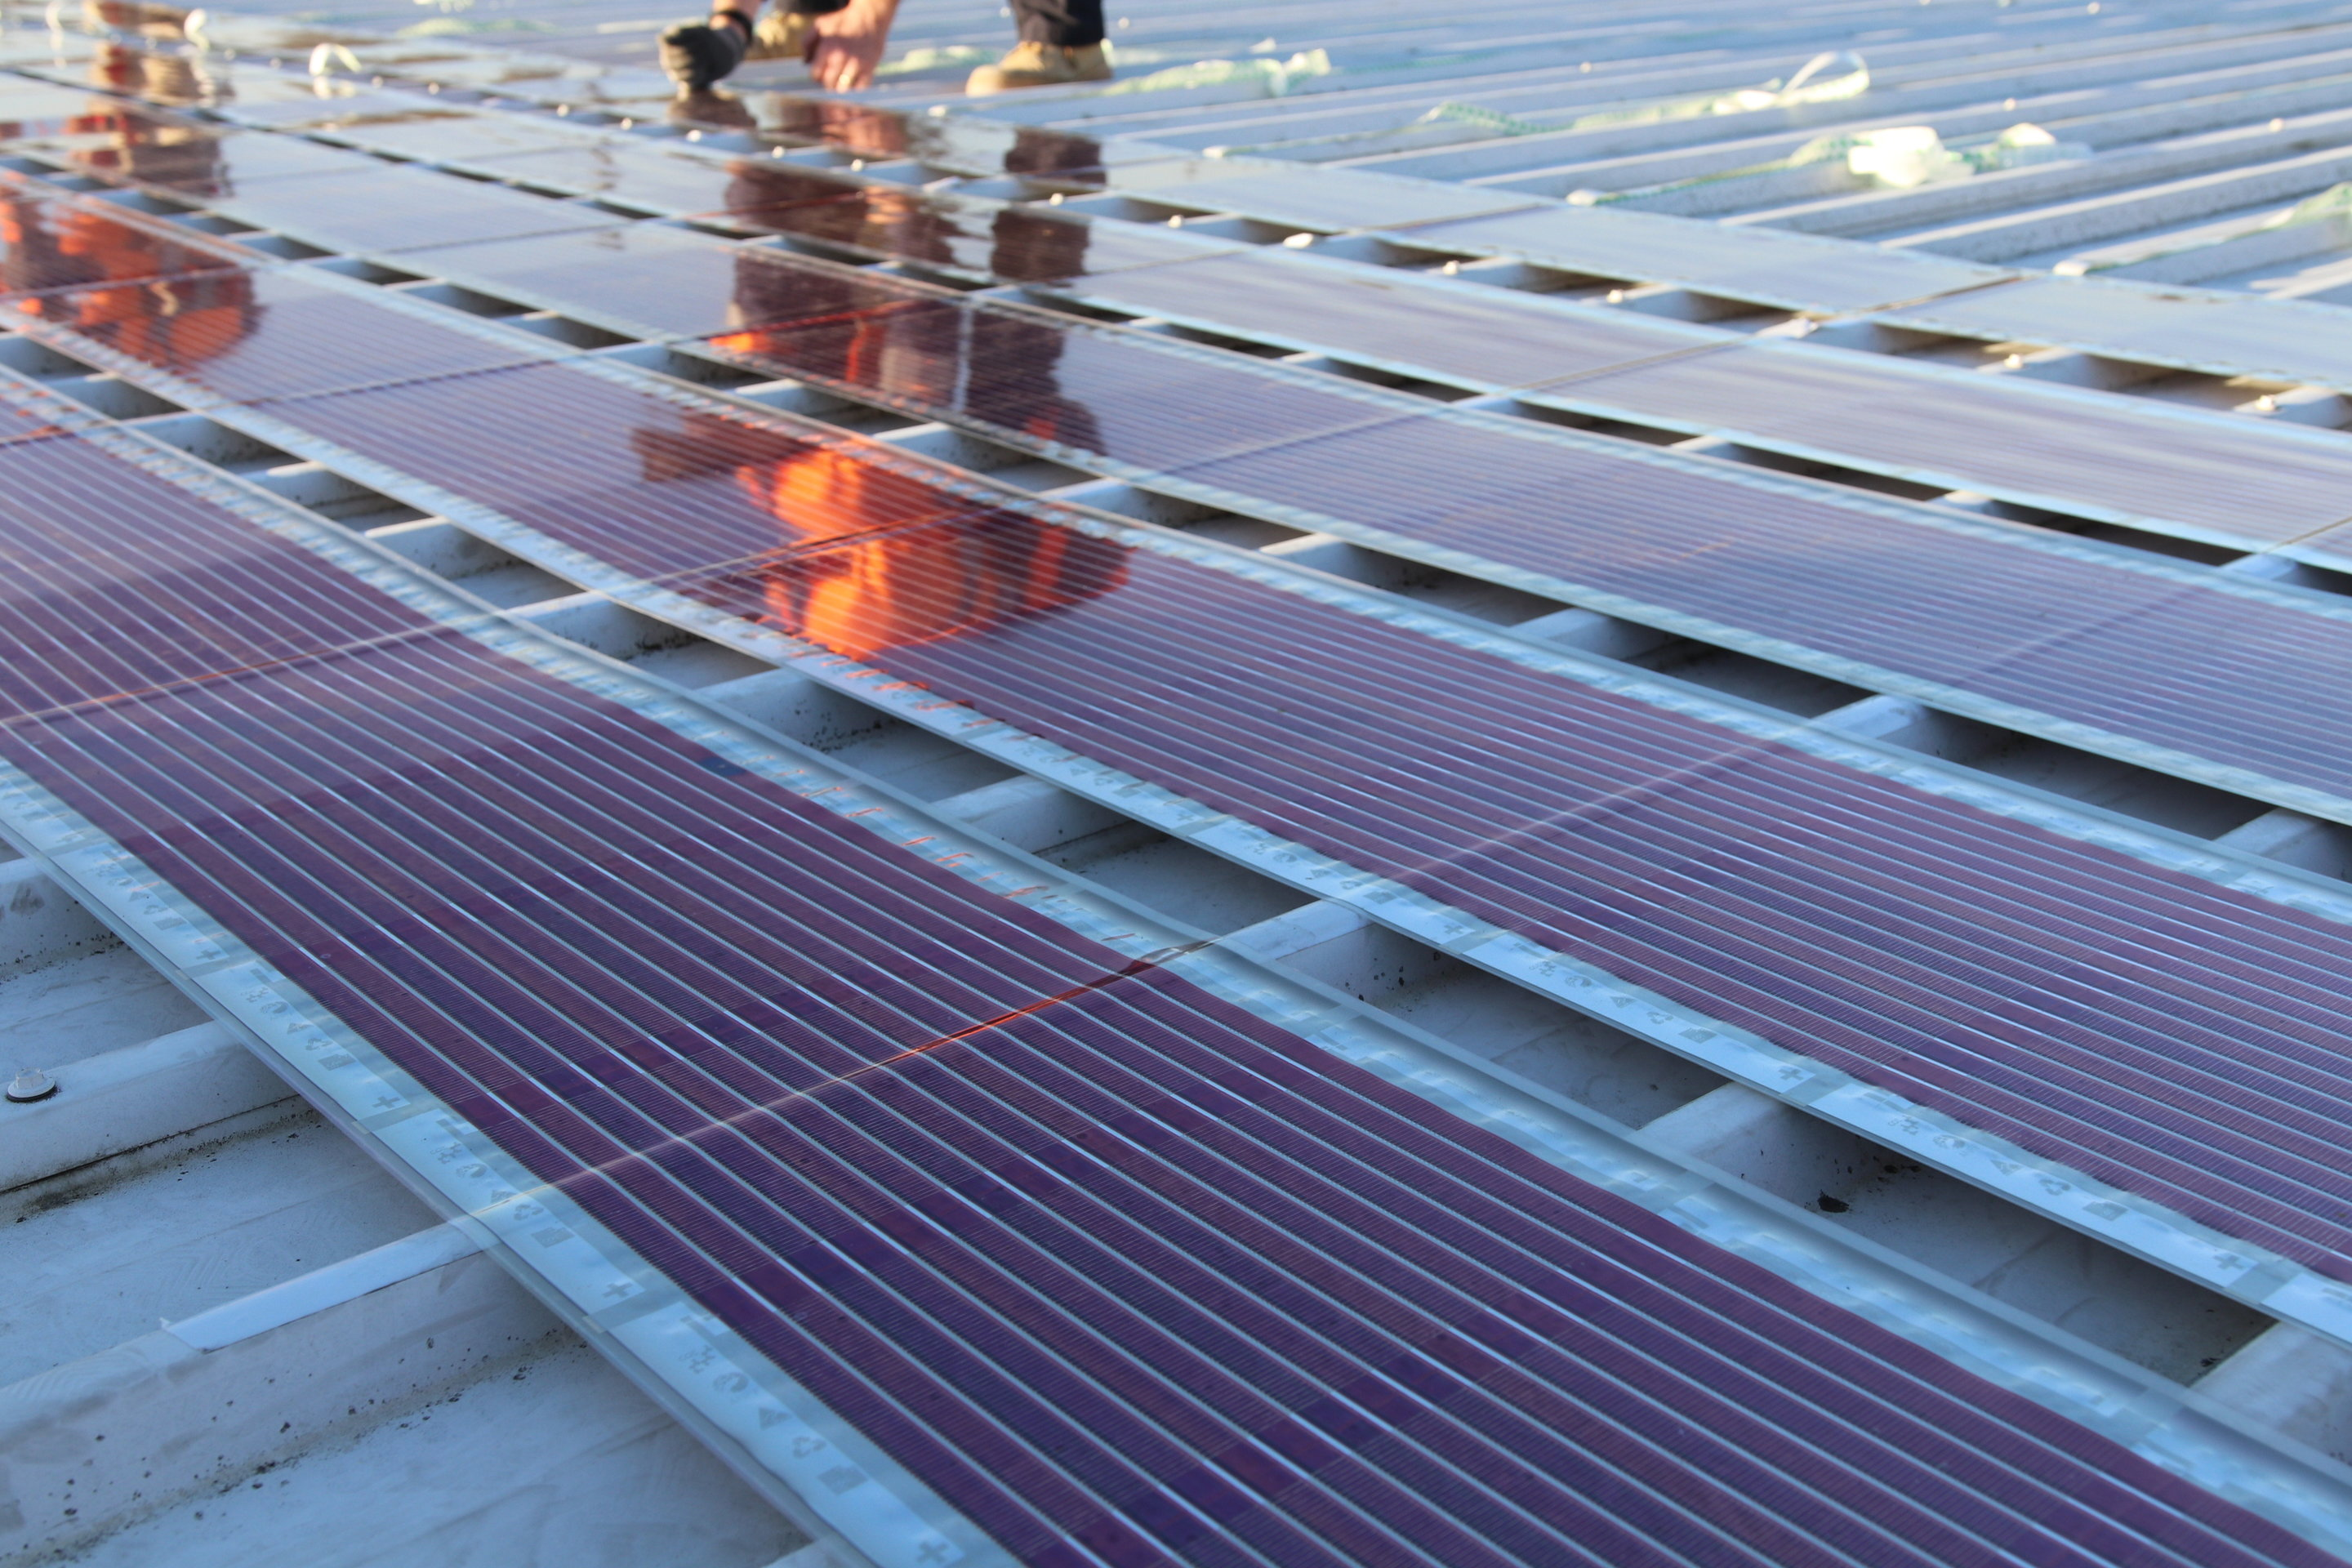 new solar cells offer you the chance to print out solar panels and